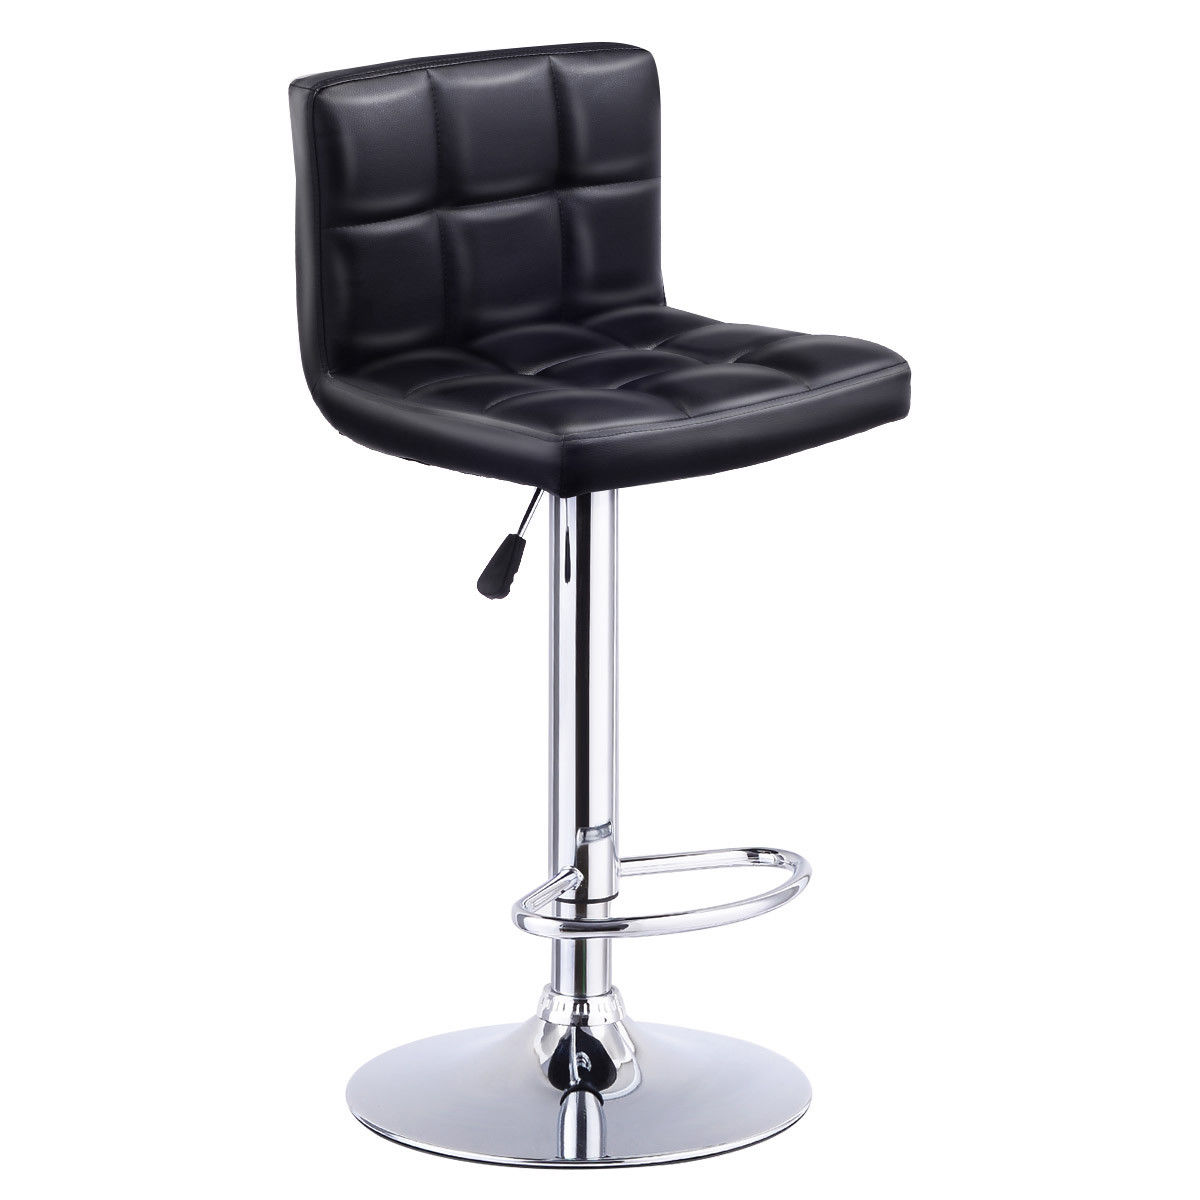 Giantex Bar Stool Swivel Adjustable PU Leather Barstools Bistro Pub Chair Modern Living Room Bar Furniture HW53843BK